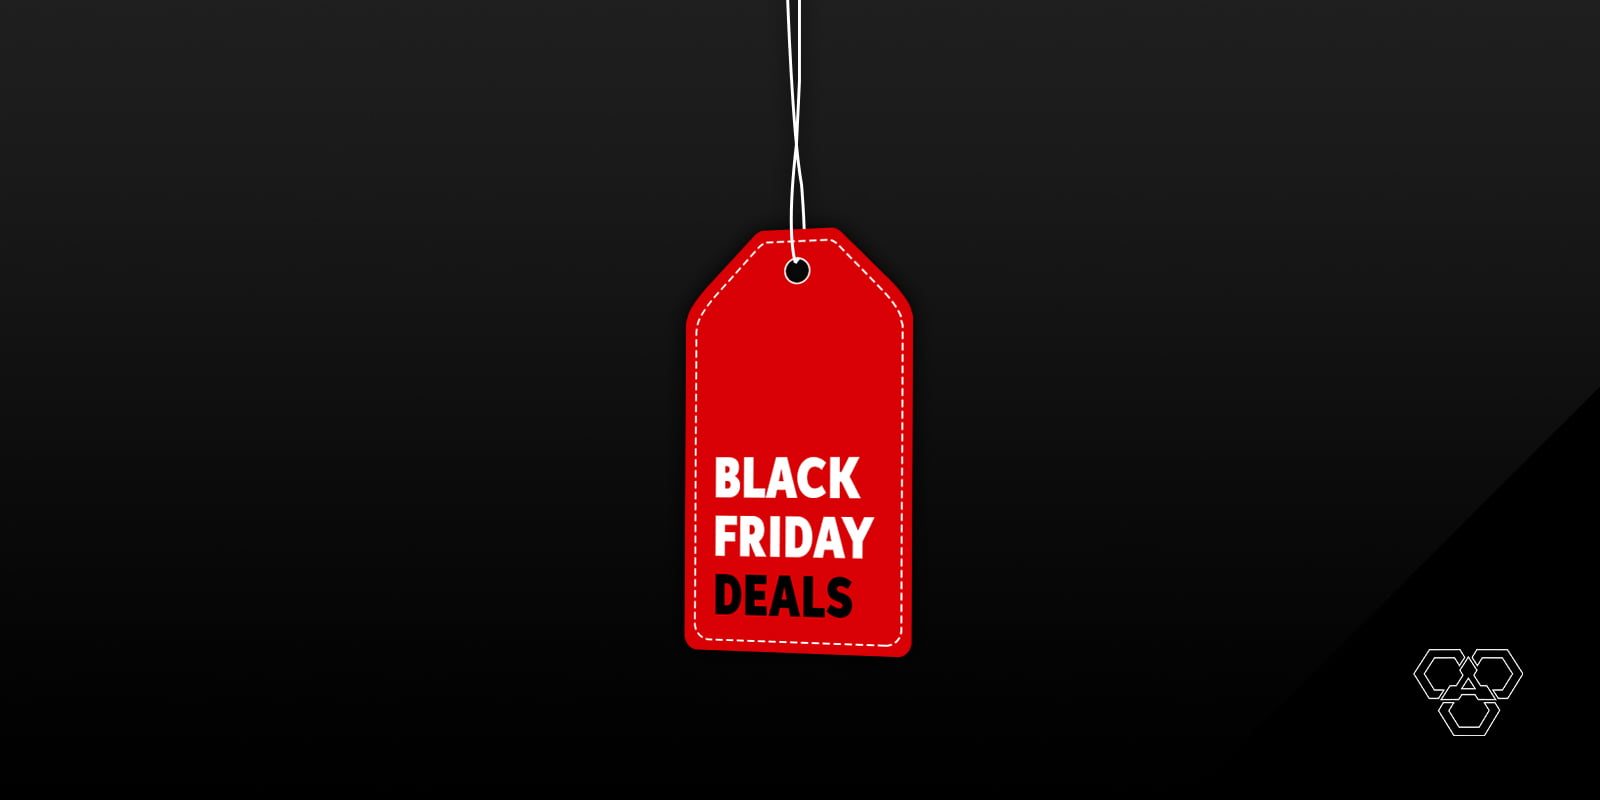 Best Black Friday Deals on Phones, Laptops, and Gadgets (2021)